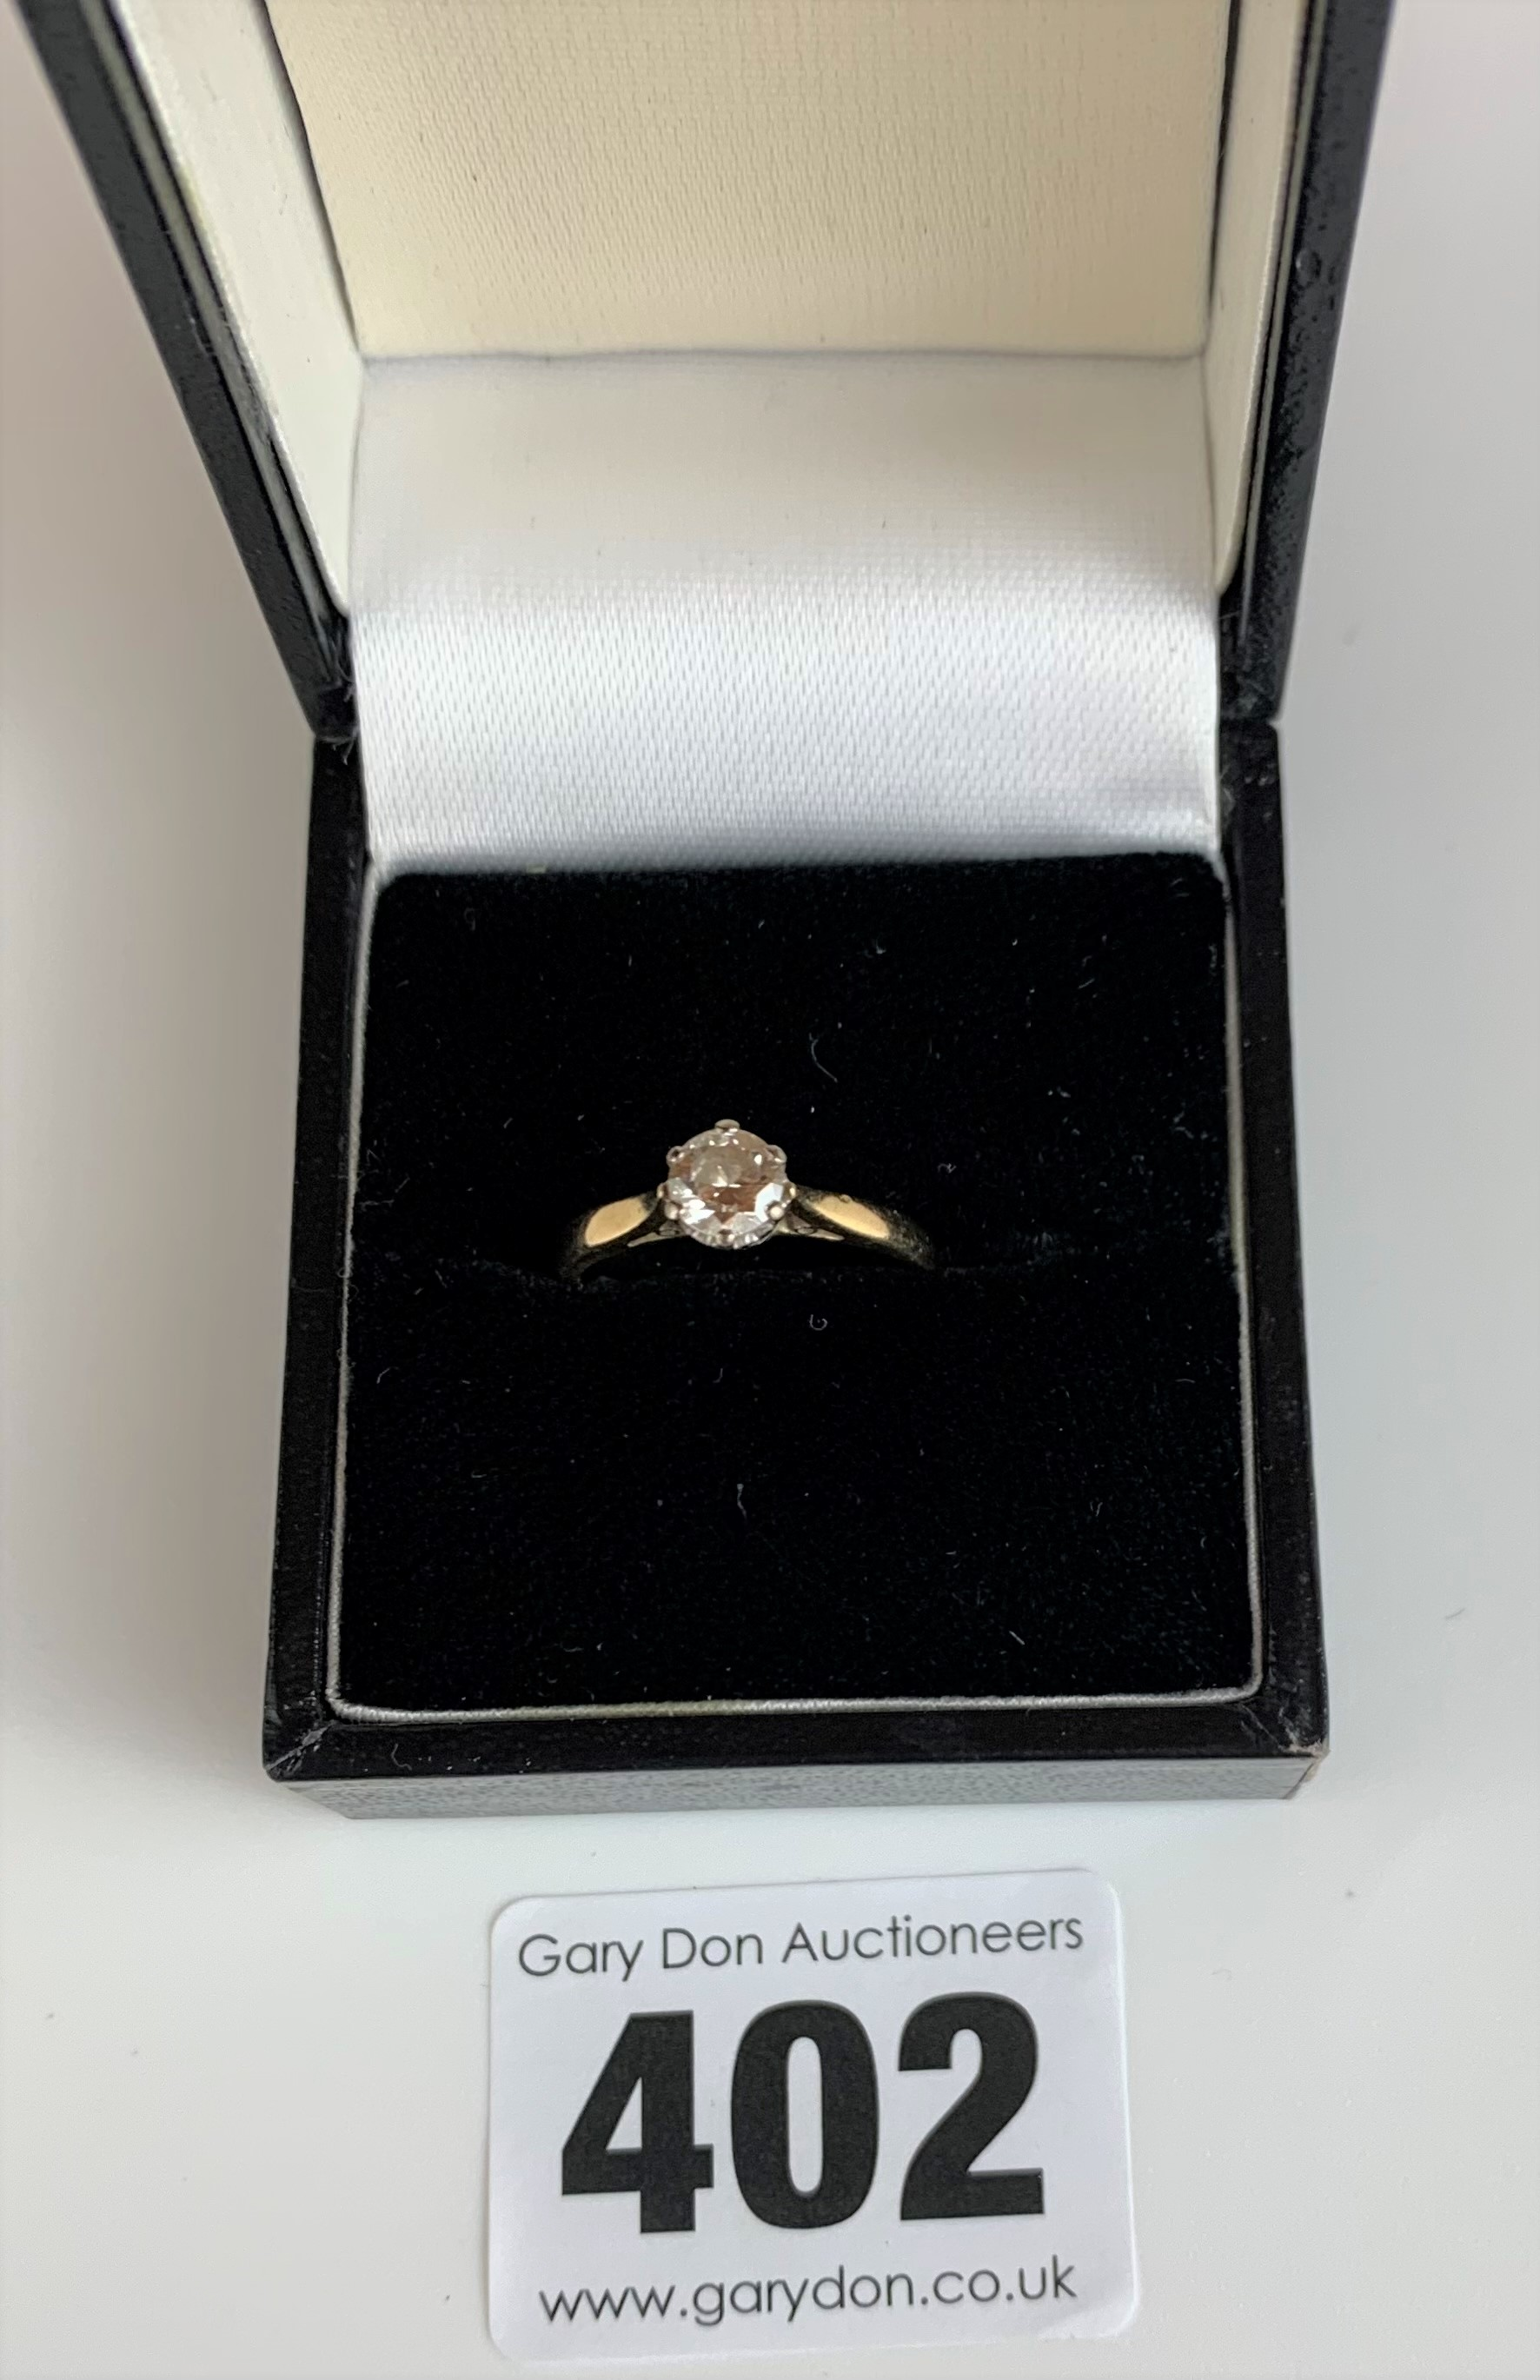 18k gold and diamond solitaire ring, size J, w: 2.2 gms